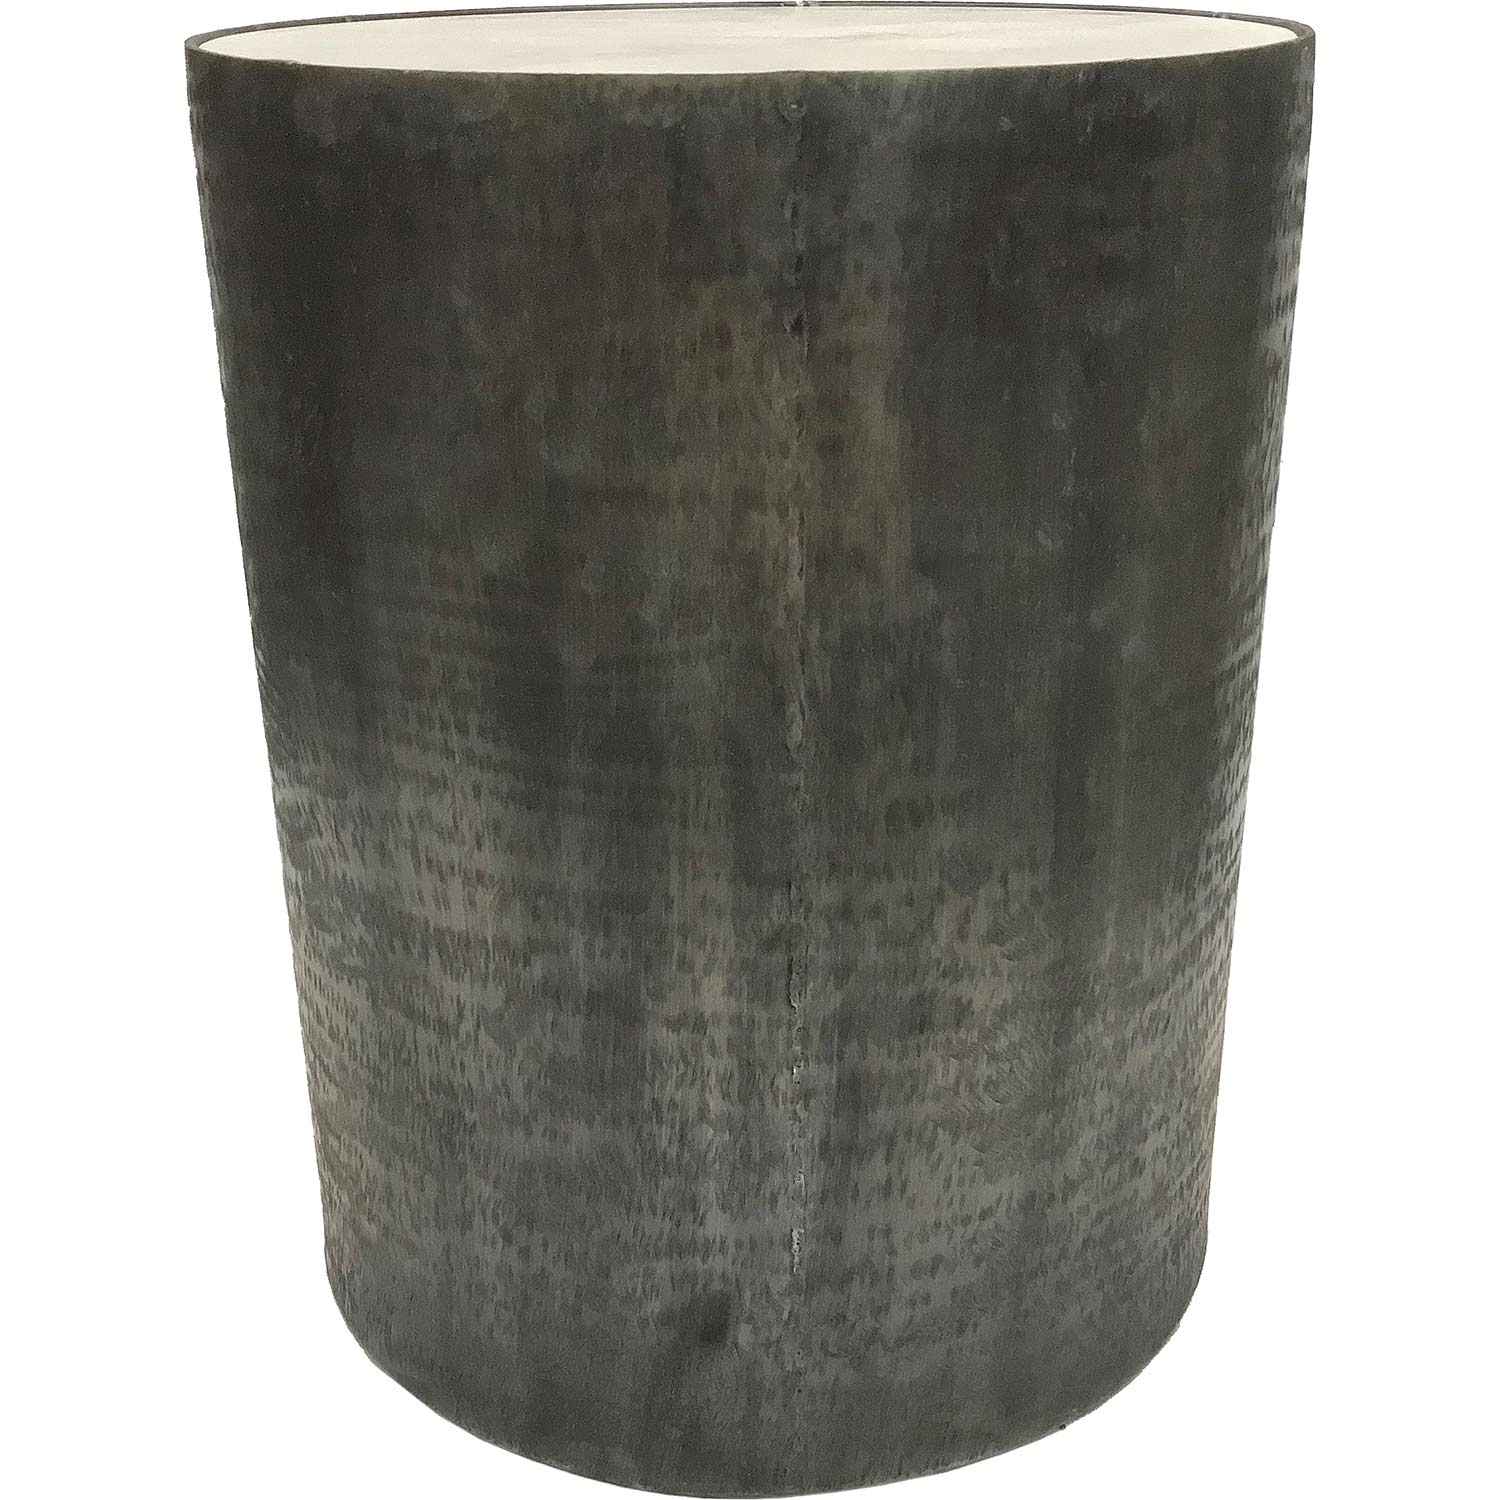 Ren-Wil Balford Outdoor Accent Table - White Marble/Brush Gray